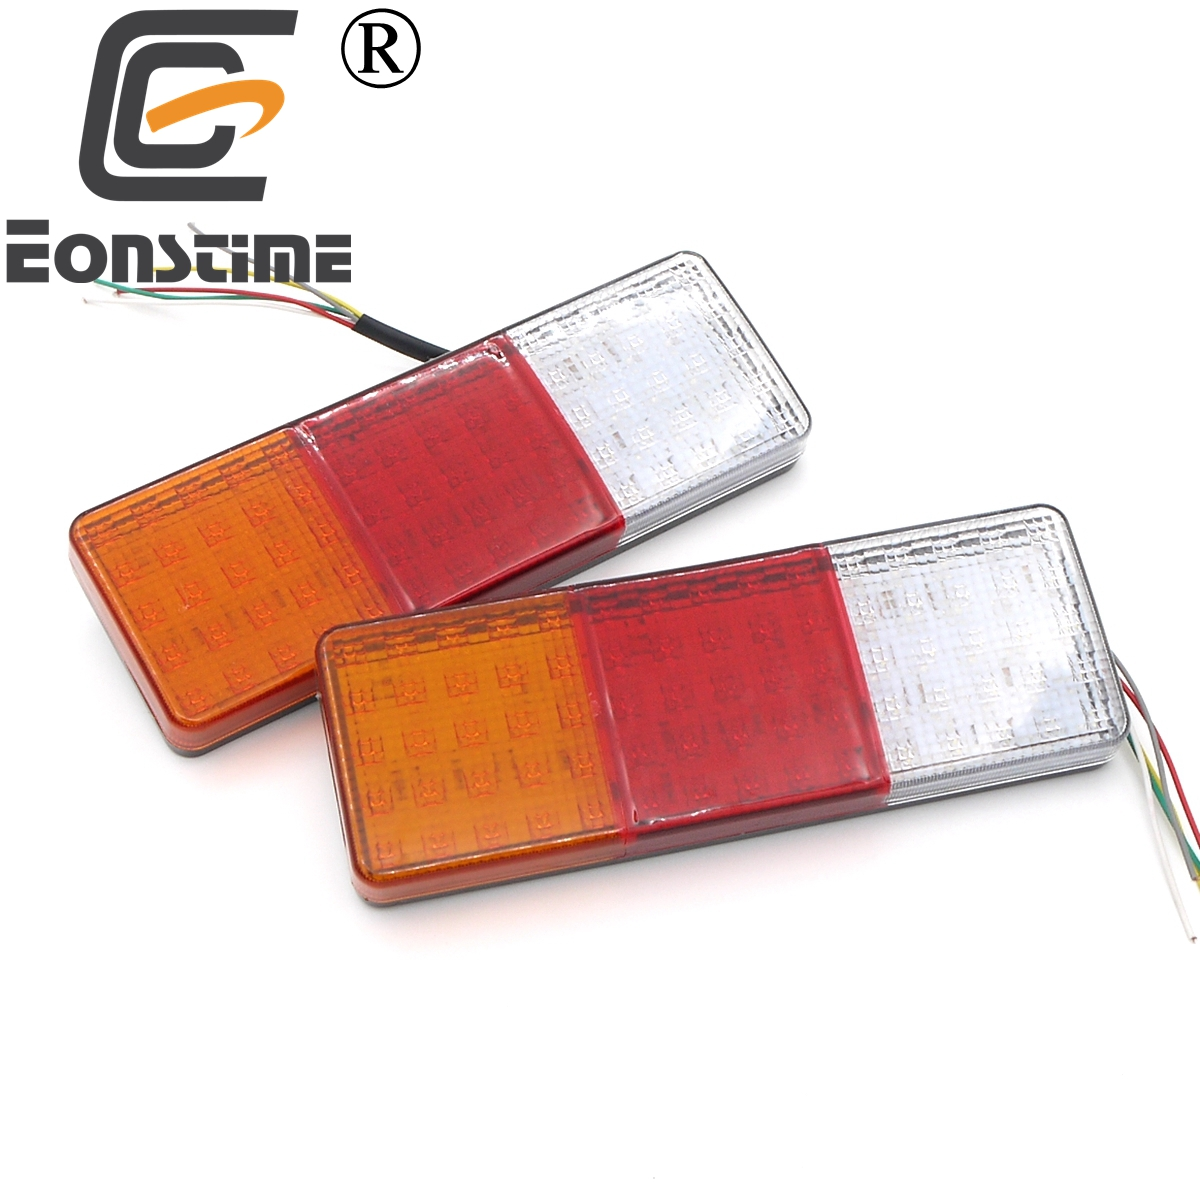 Eonstime 2pcs 12V/24V 75 LED Car Truck Tail Light Warning Lights Rear Lamps Waterproof Tailights Rear Parts Trailer Truck Light eonstime 2pcs 12v 16 led red white truck trailer boat stop turn tail light reverse light lamp waterproof